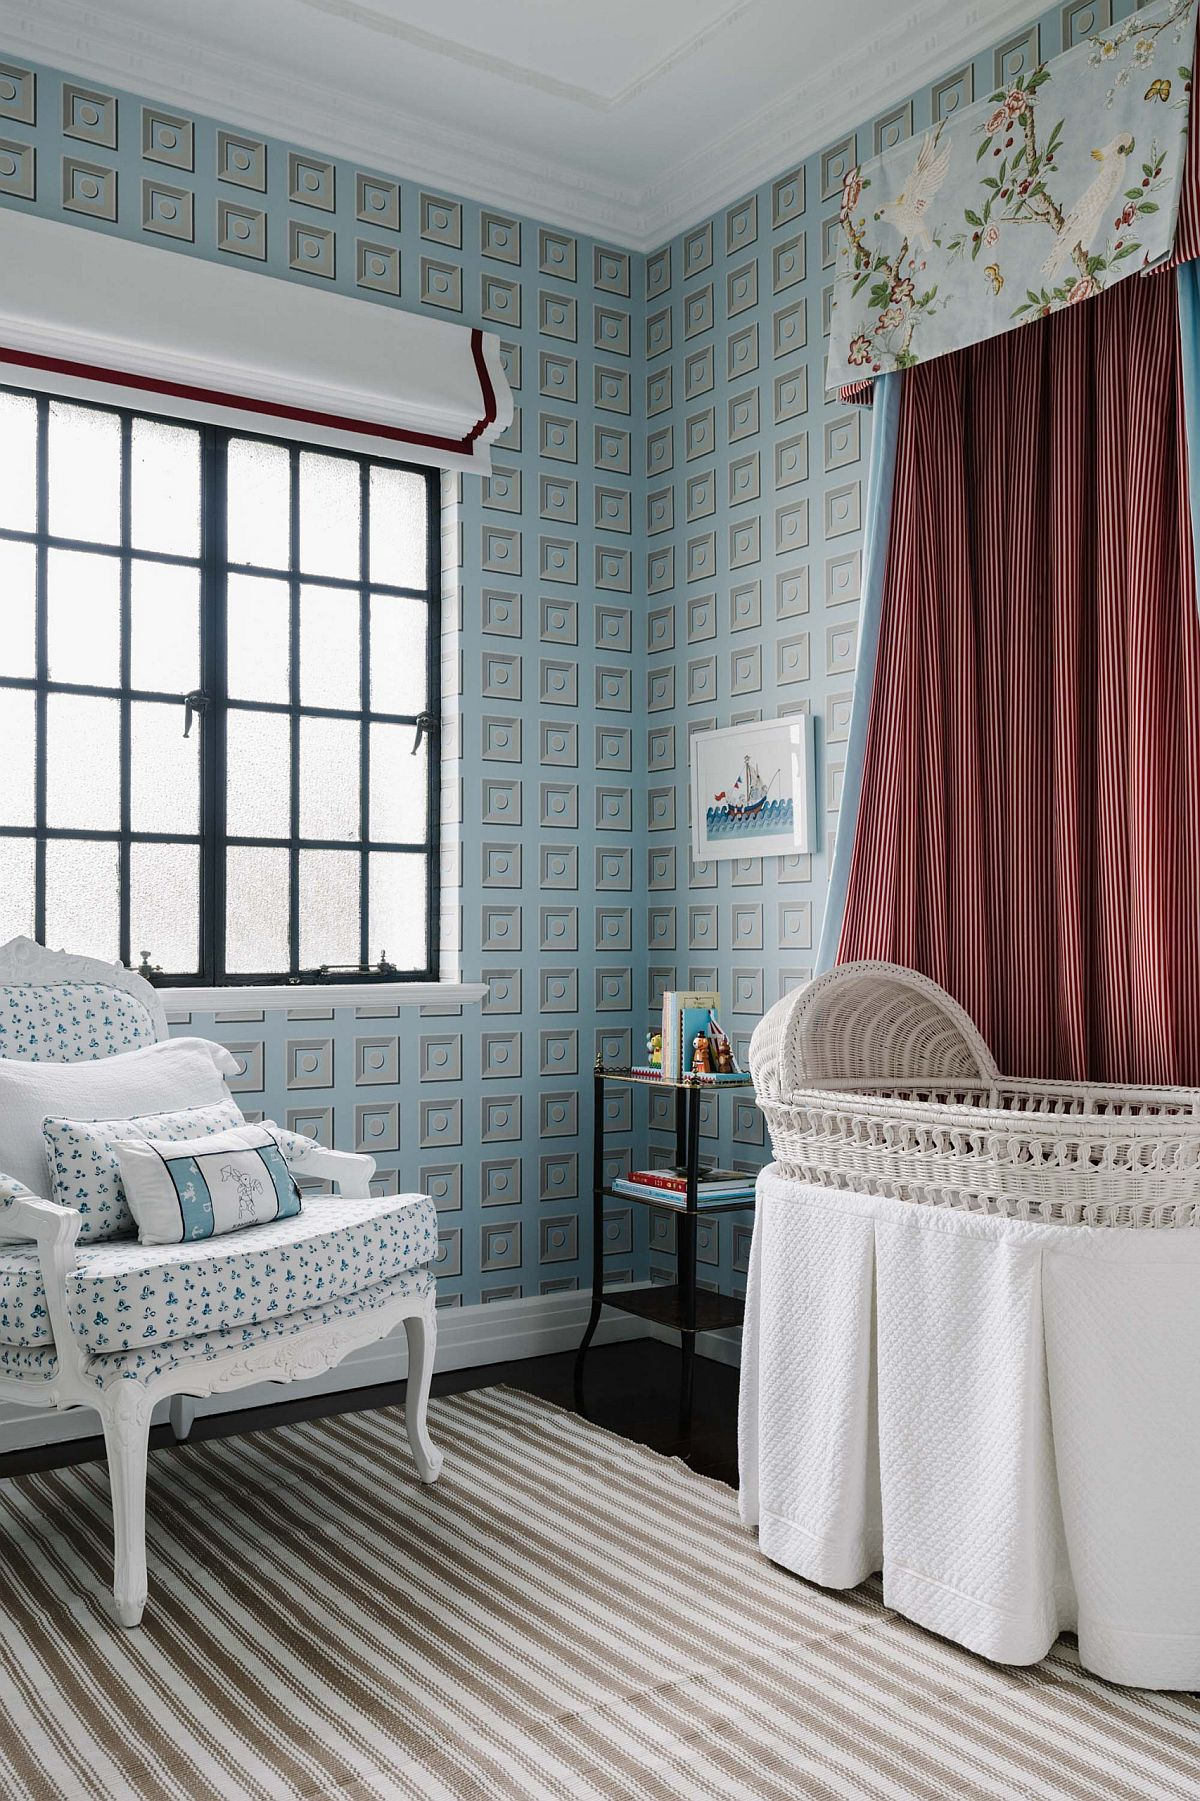 Wallpaper brings fun color and pattern to the modern traditional kids' room with a difference